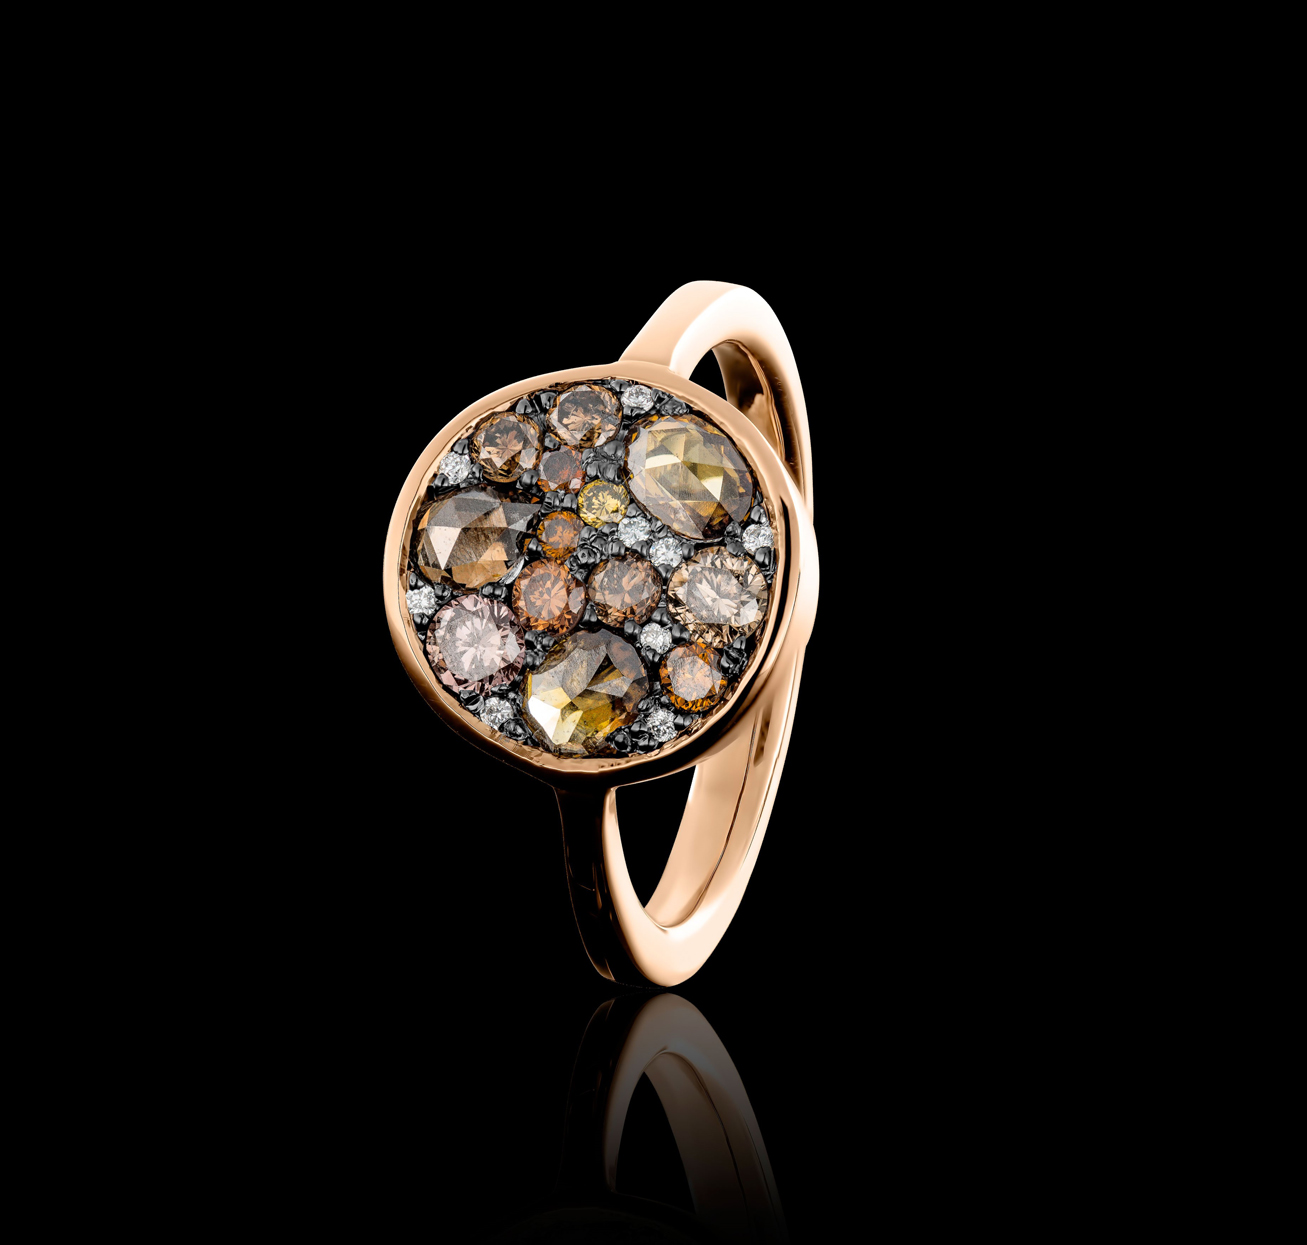 ring with cognac colored, brown and white diamonds